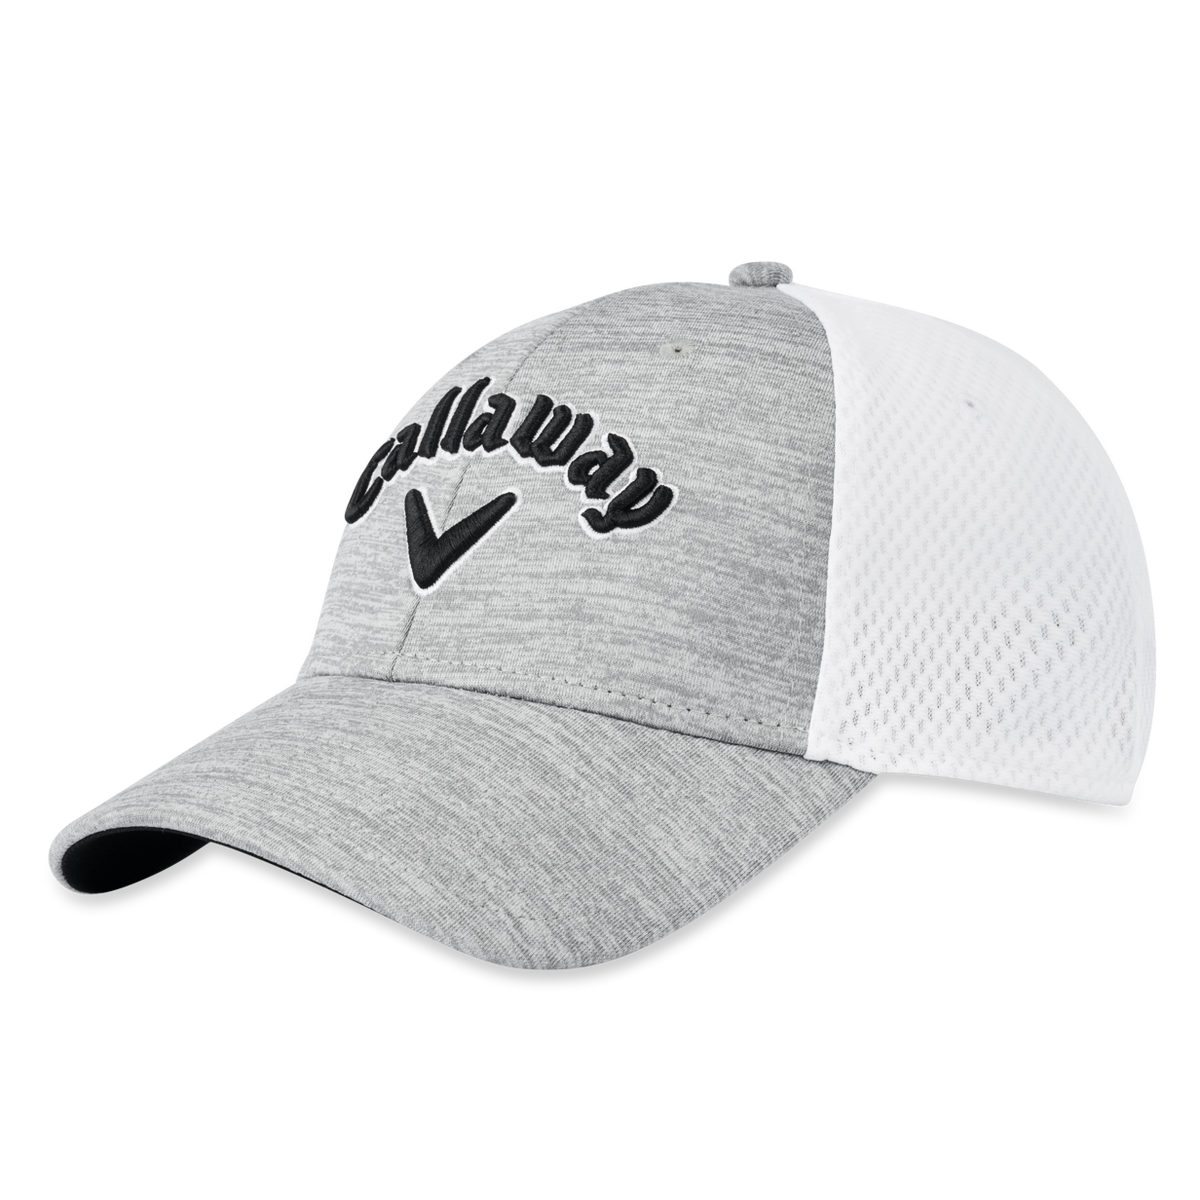 Callaway Mesh Fitted Hat  edadfe2e00e